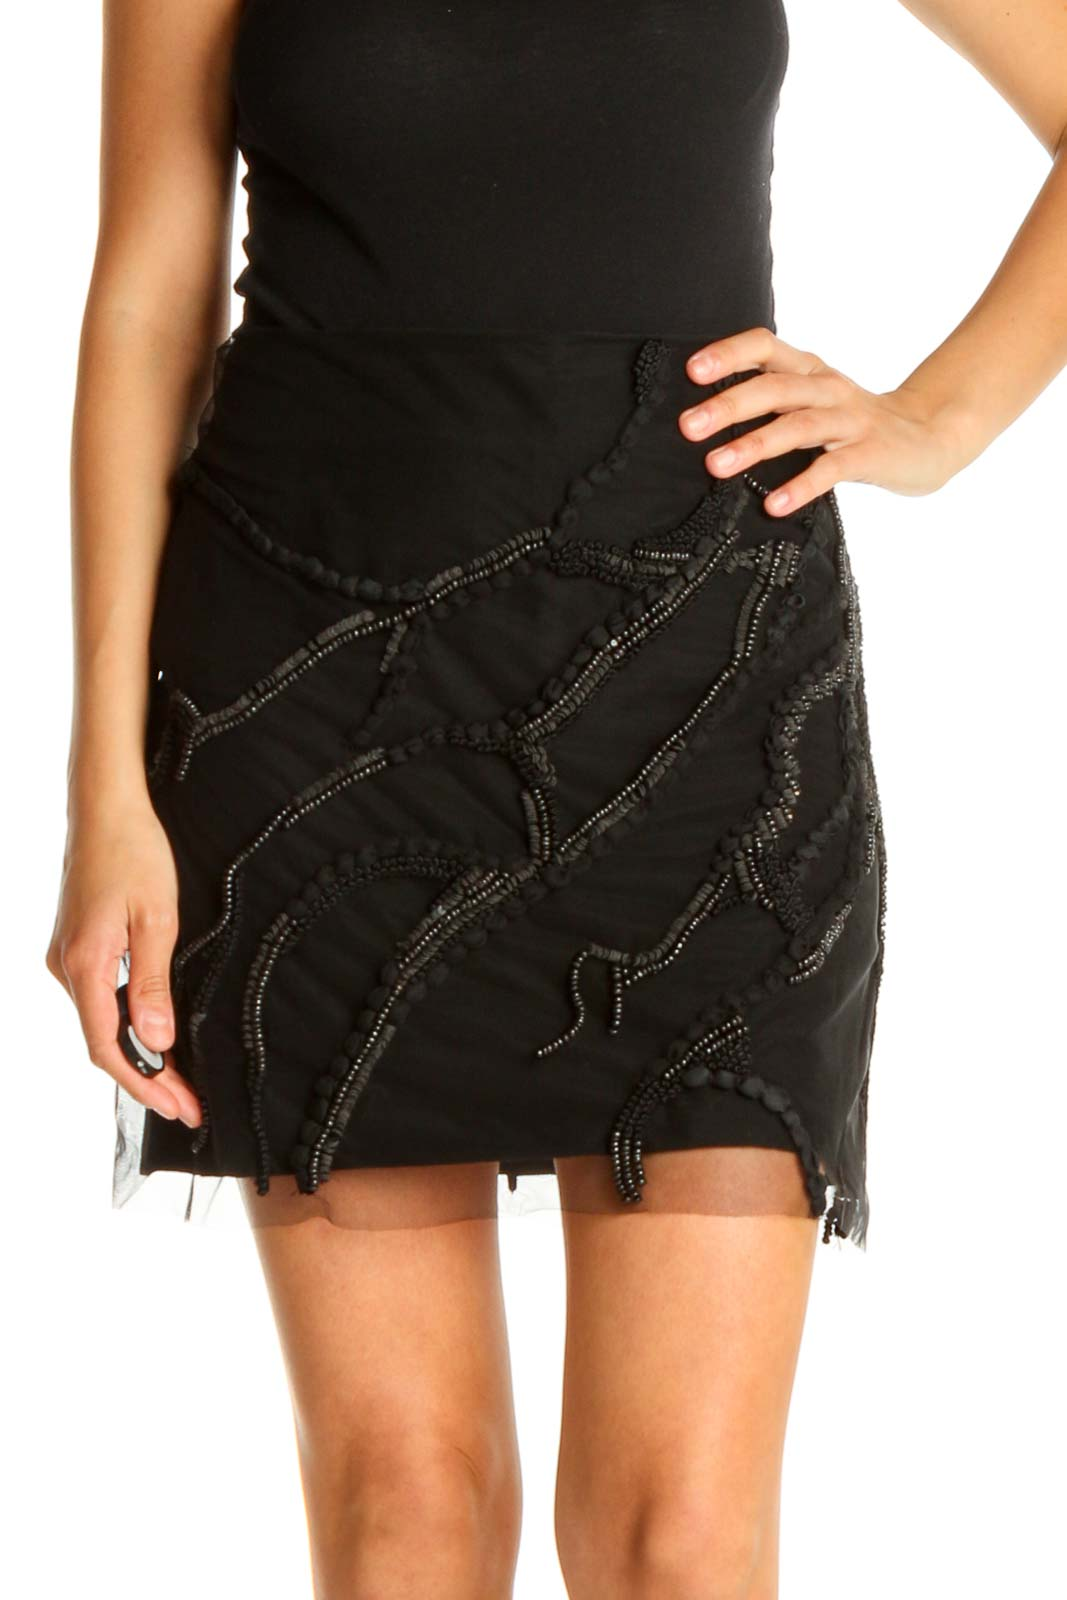 Black Textured Chic Pencil Skirt Front